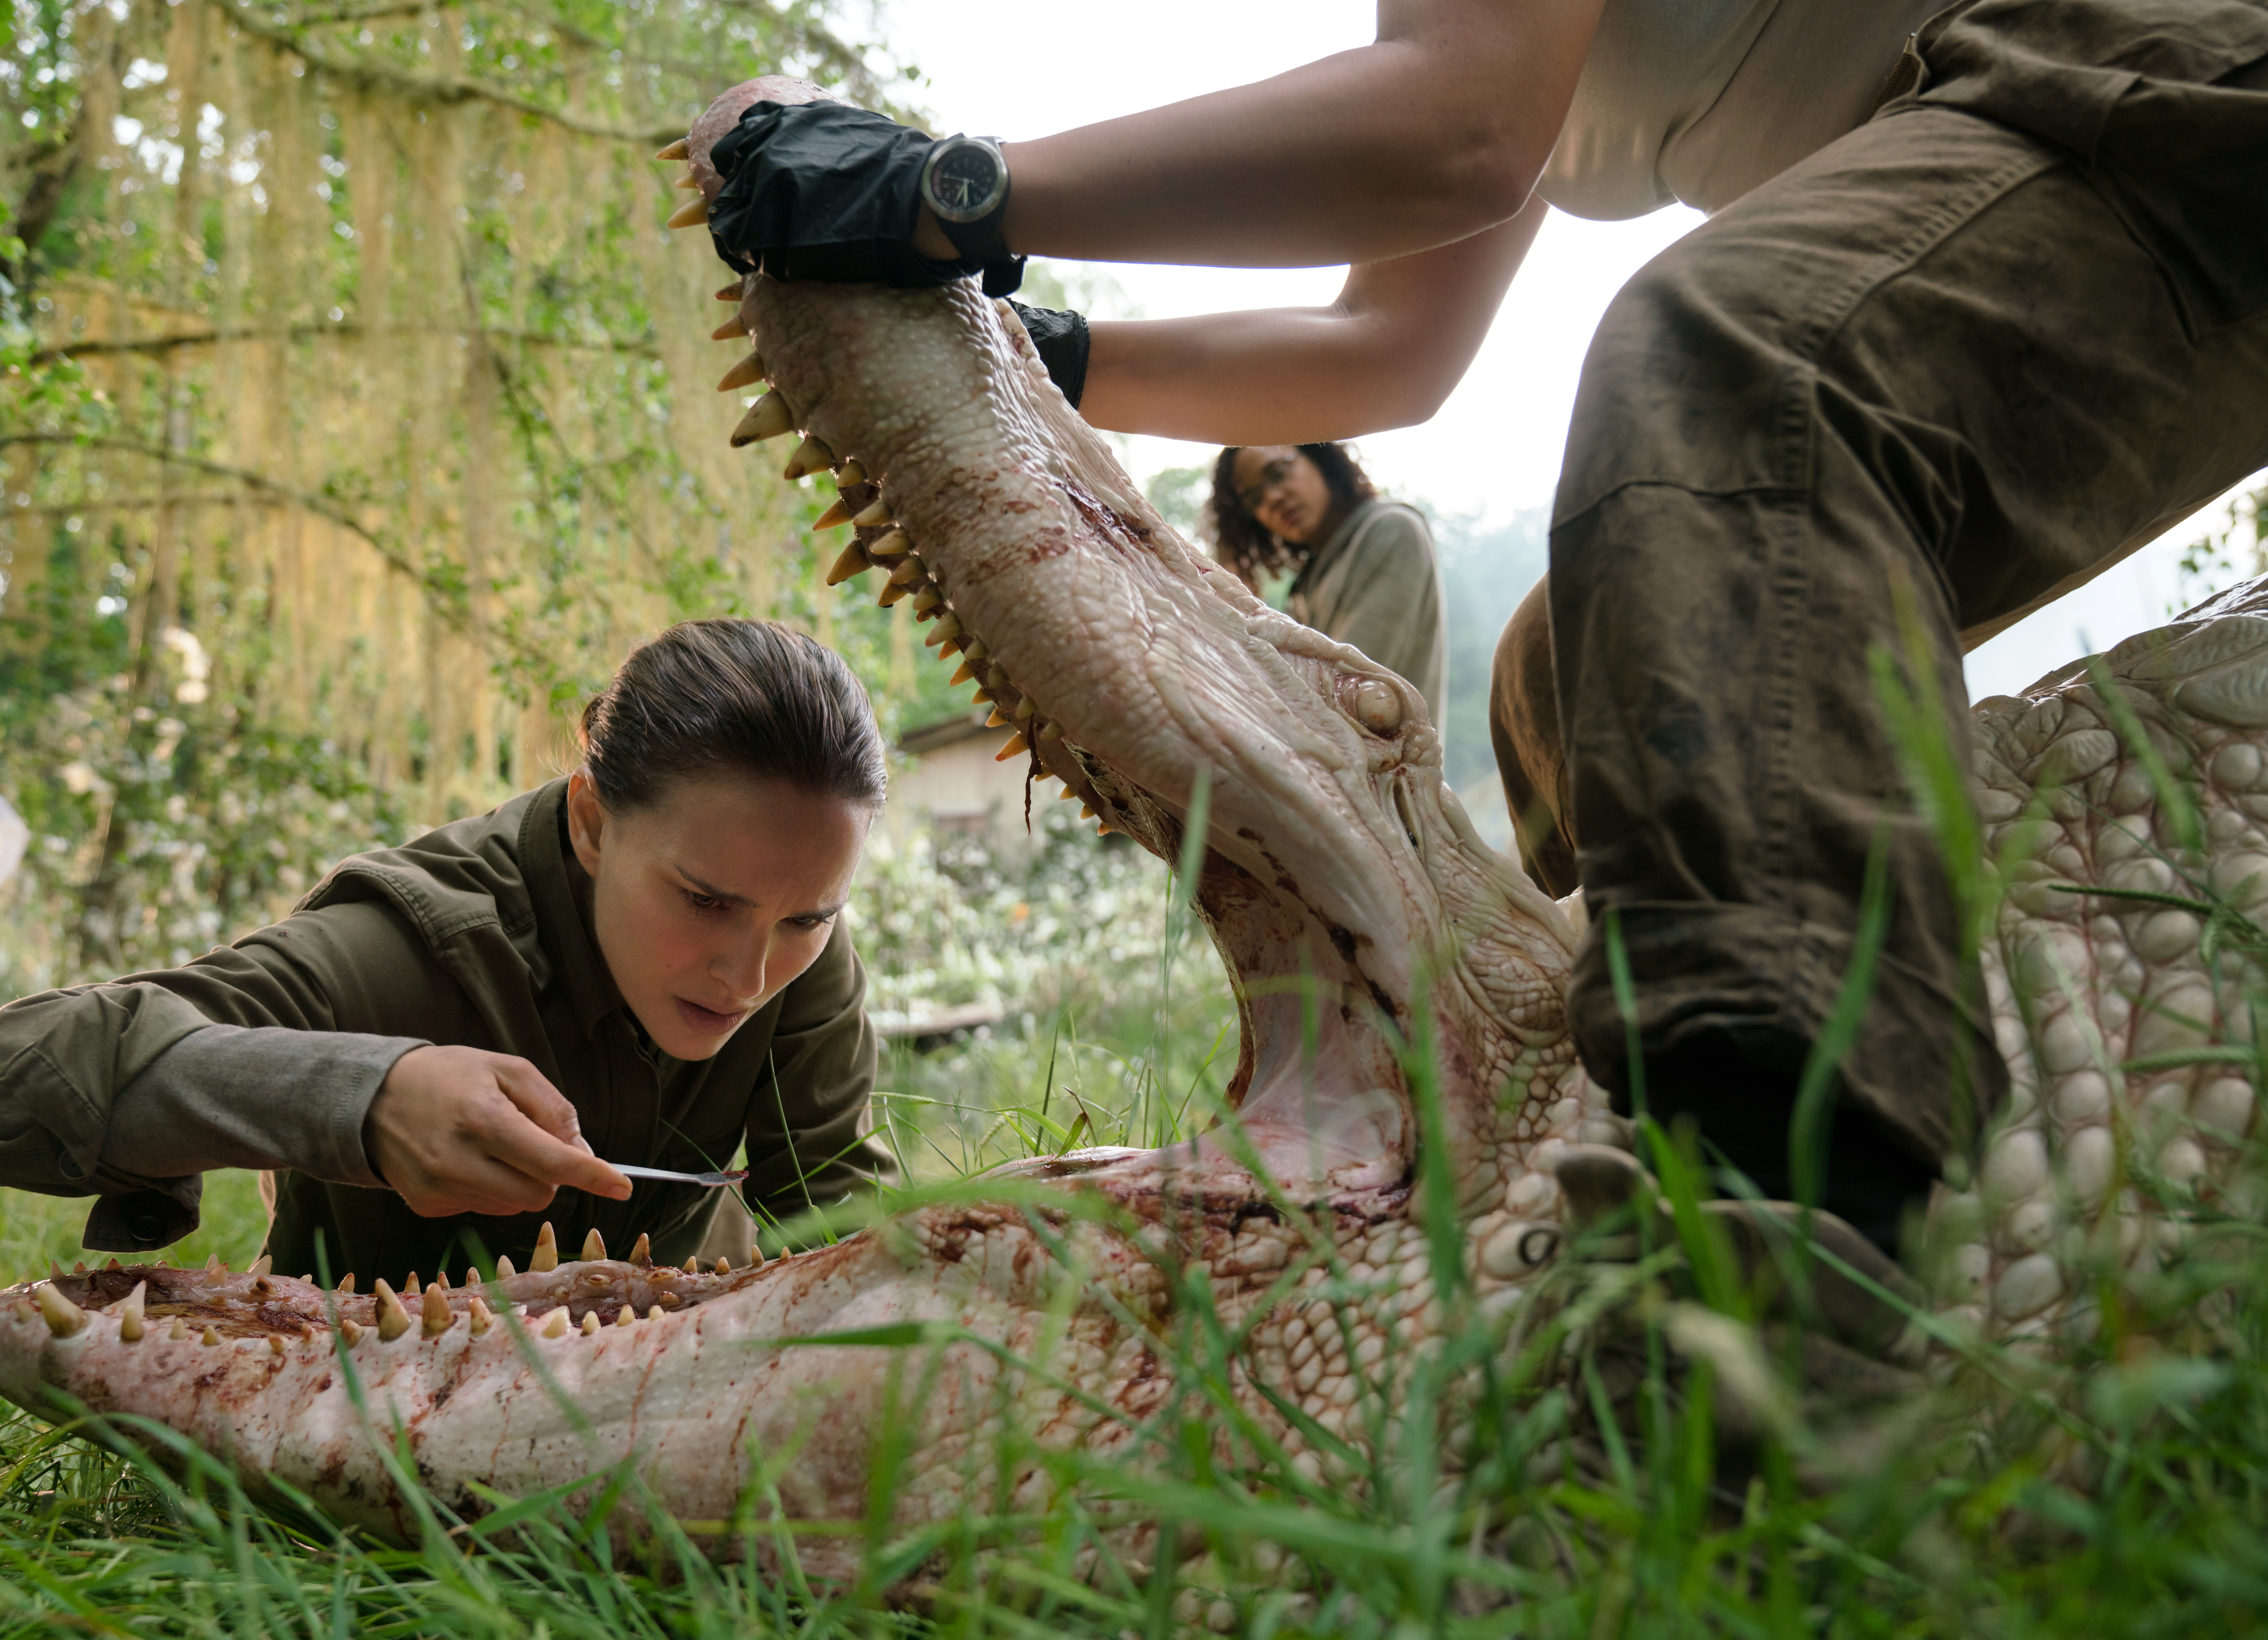 Left to right: Natalie Portman and Tessa Thompson in ANNIHILATION, from Paramount Pictures and Skydance.